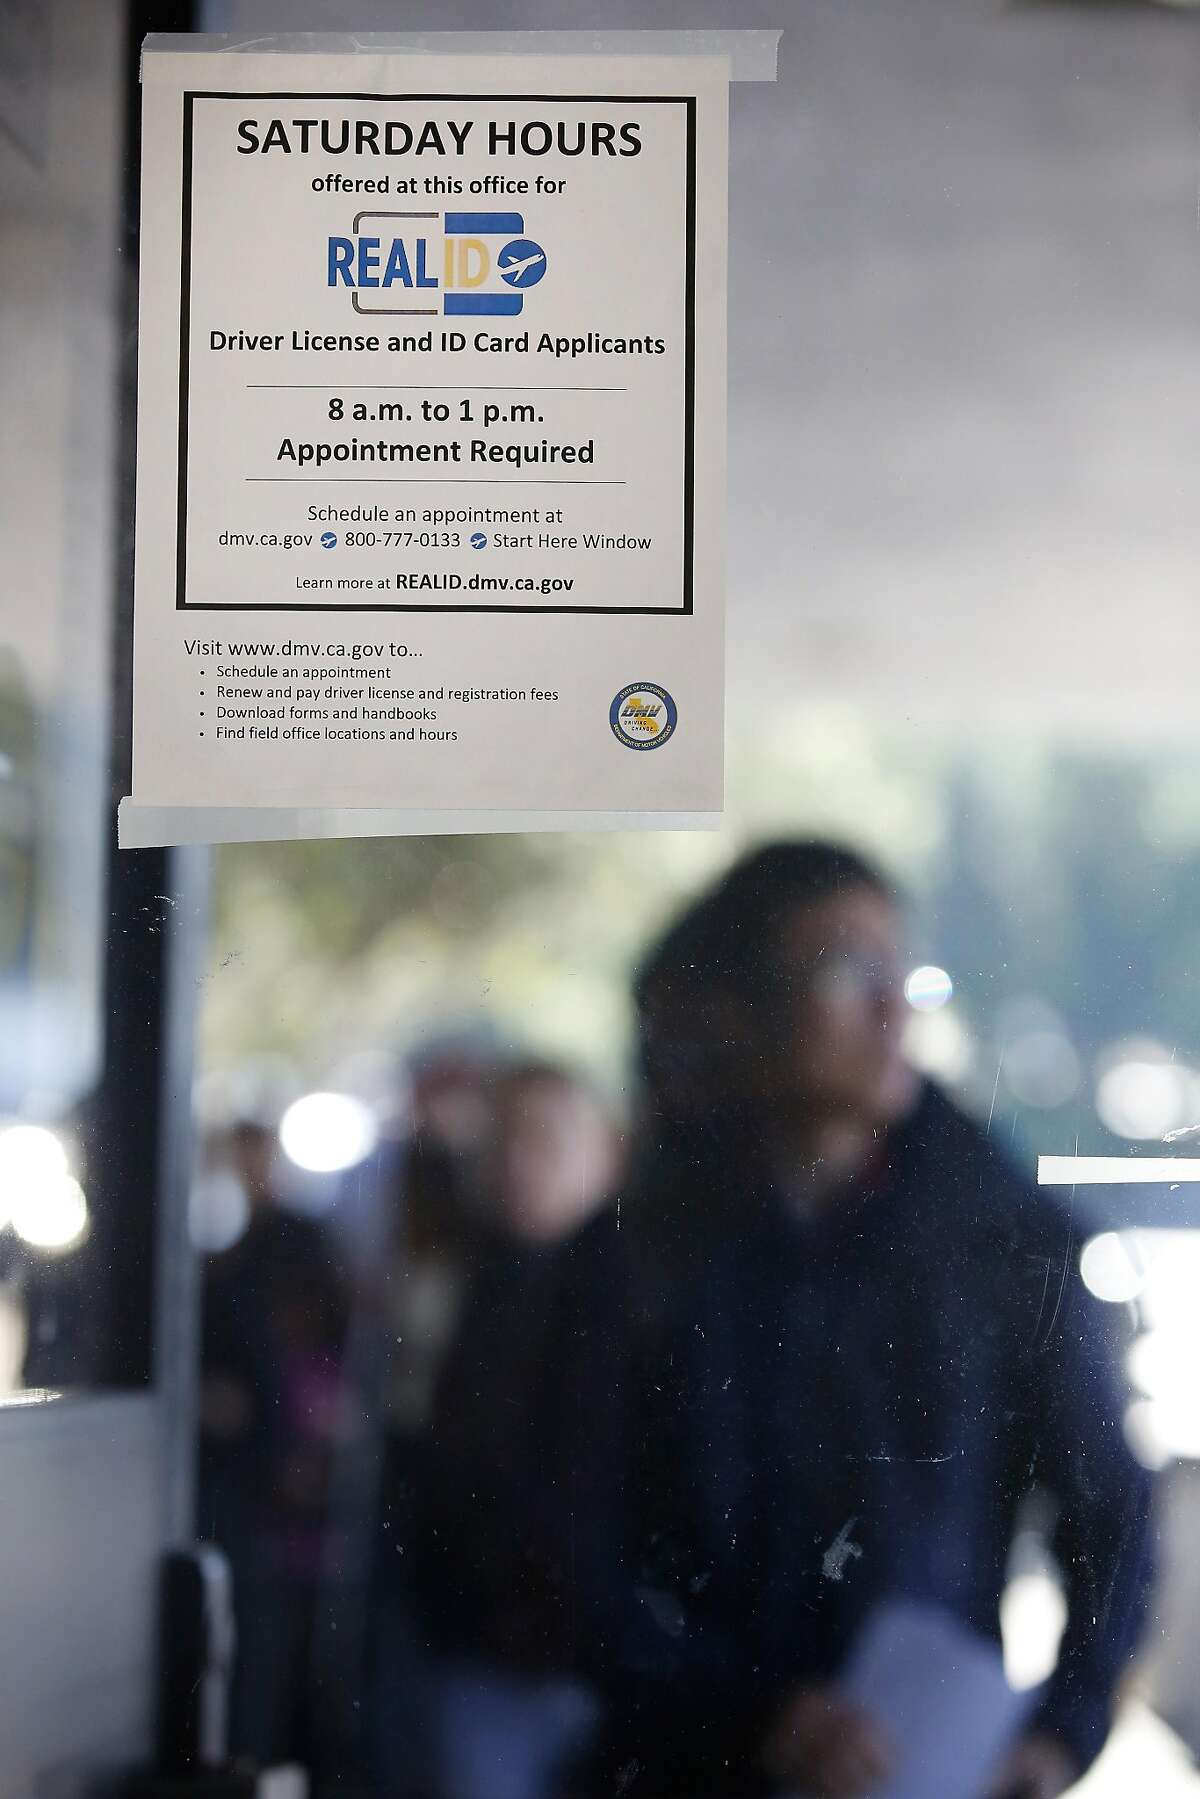 A sign for Saturday hours for Real ID applicants is seen at the Department of Motor Vehciles on Tuesday, January 23, 2018 in Daly City, Calif.